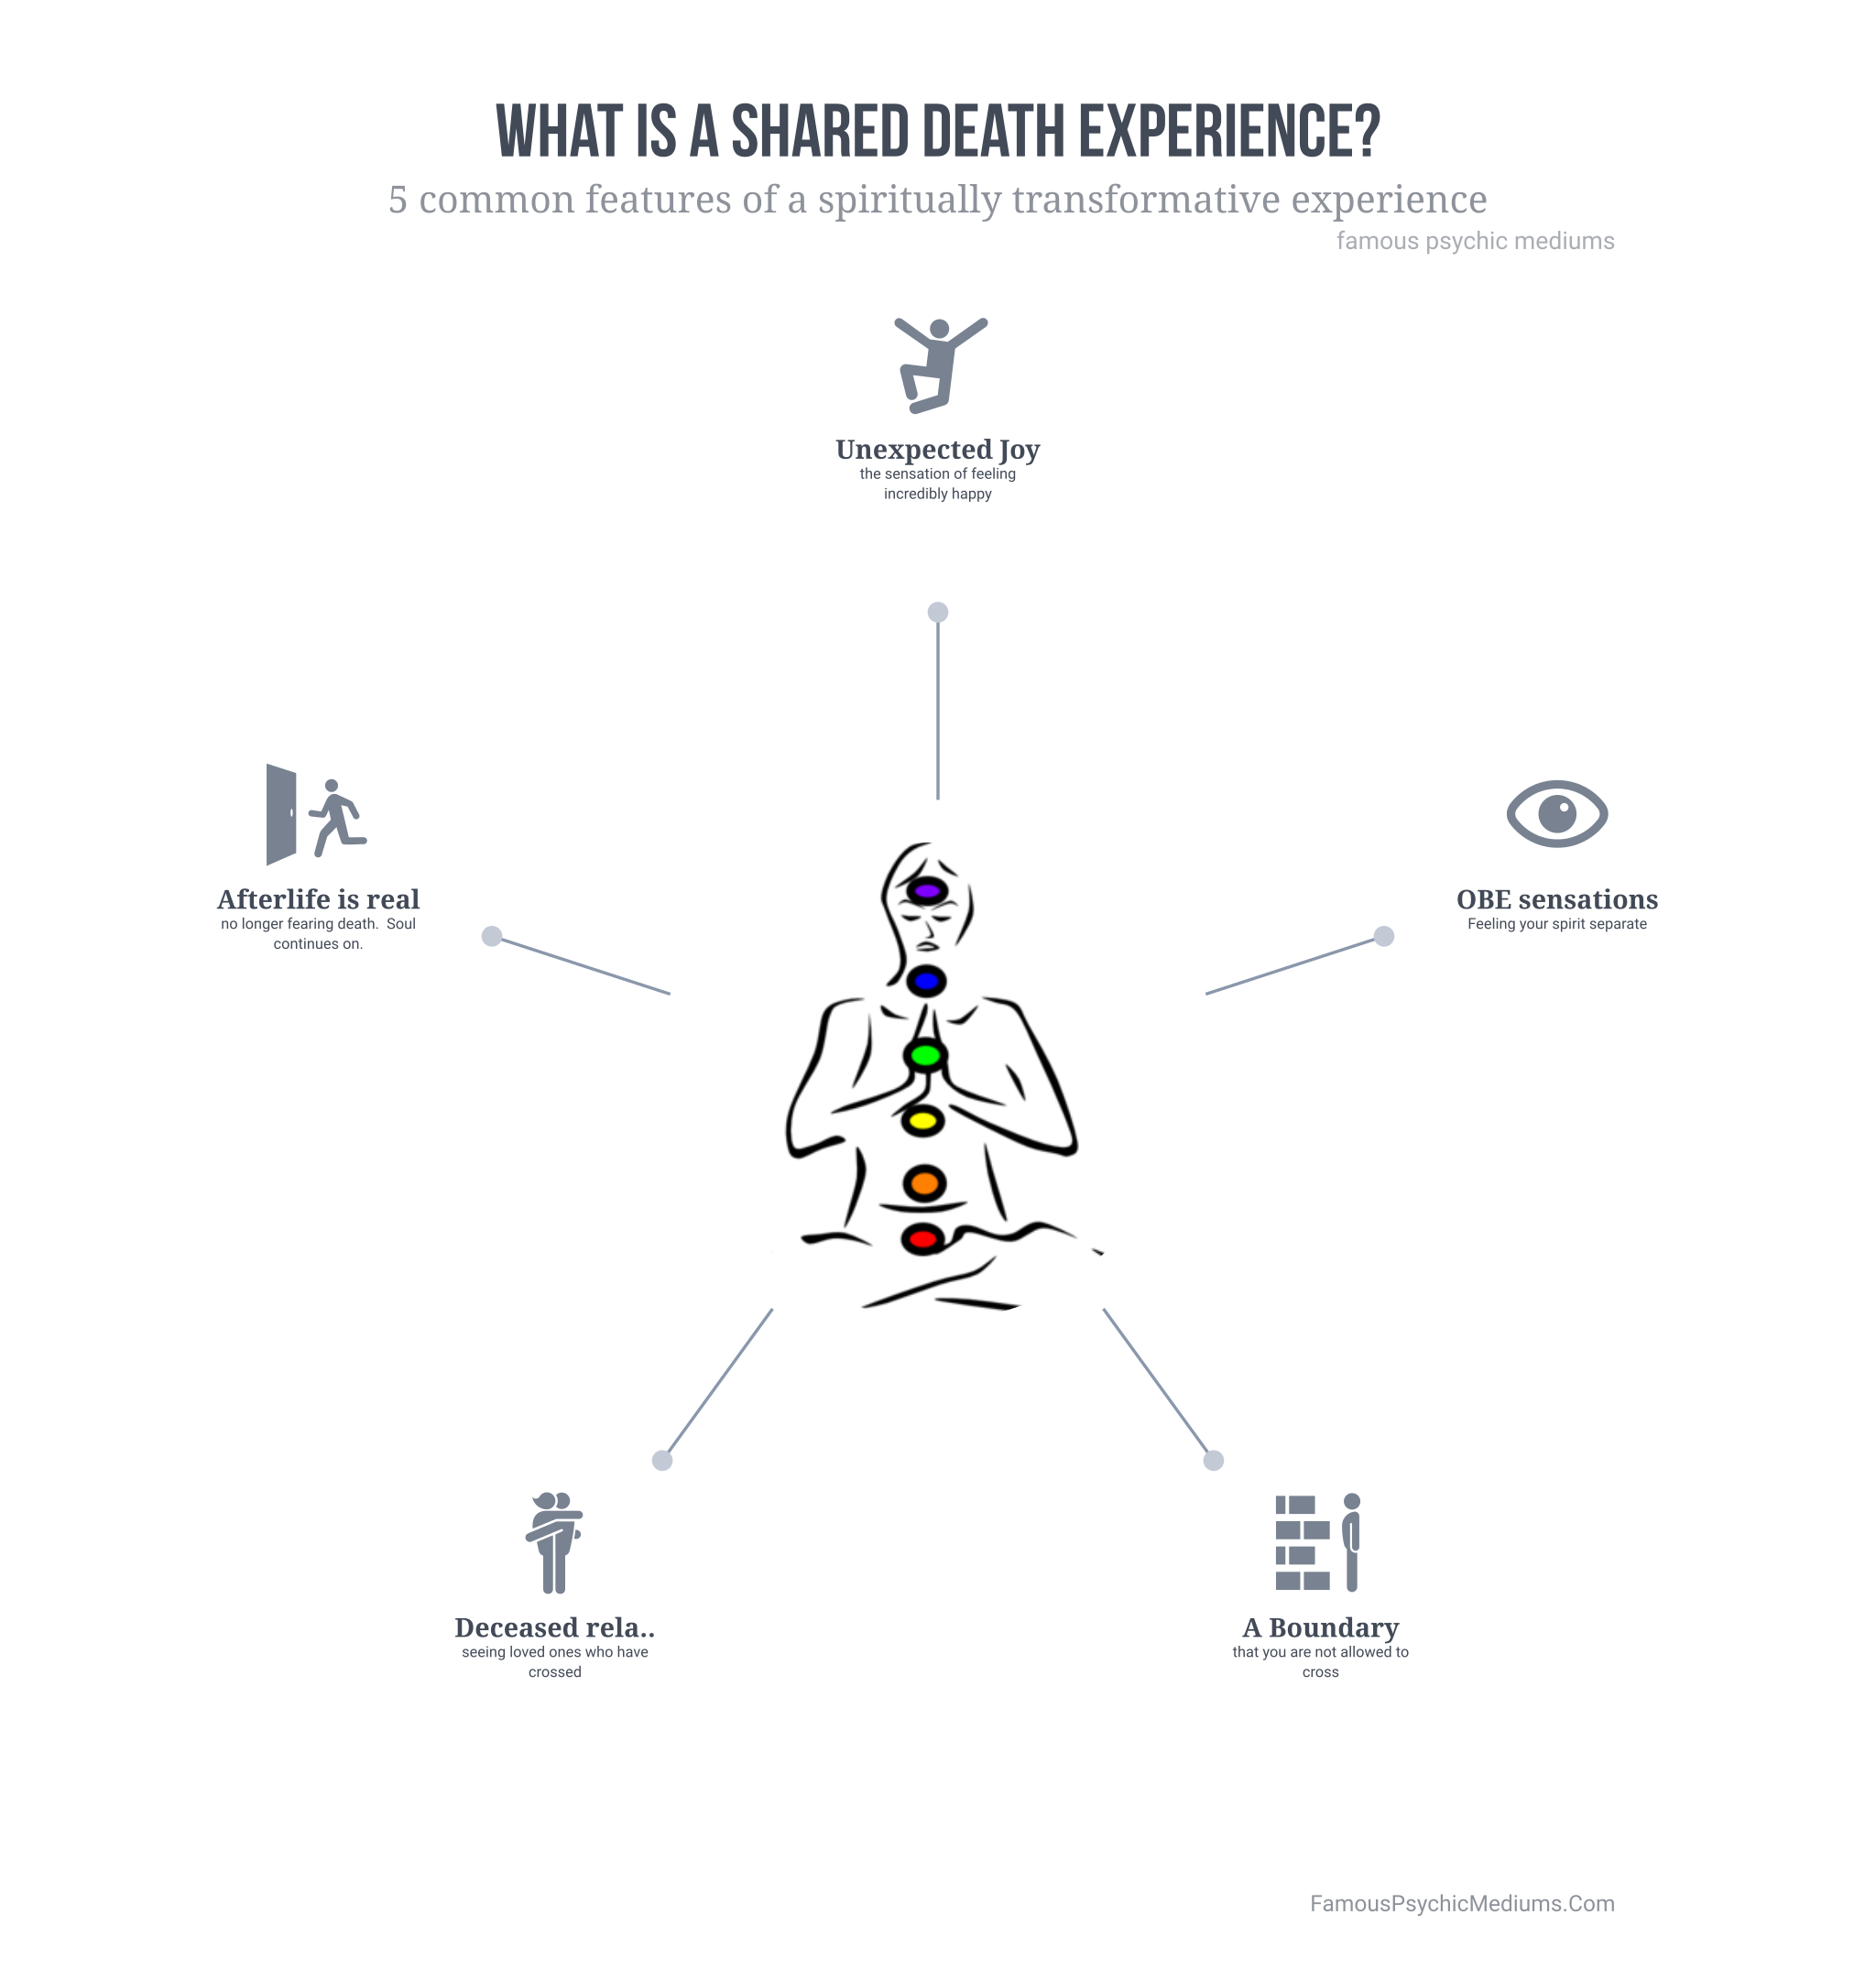 shared death experiences